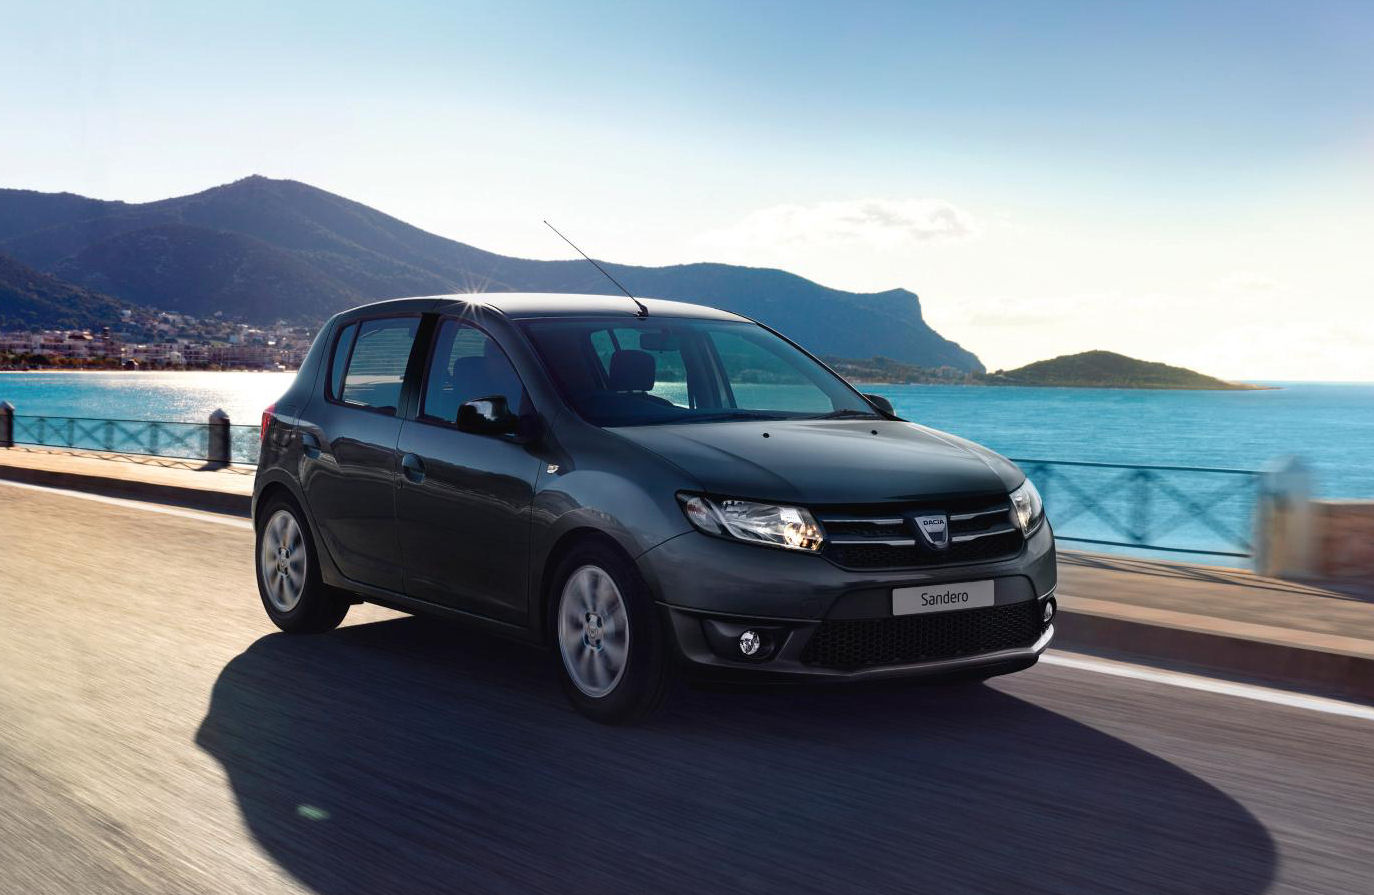 Dacia Launches Sandero Midnight Limited Edition